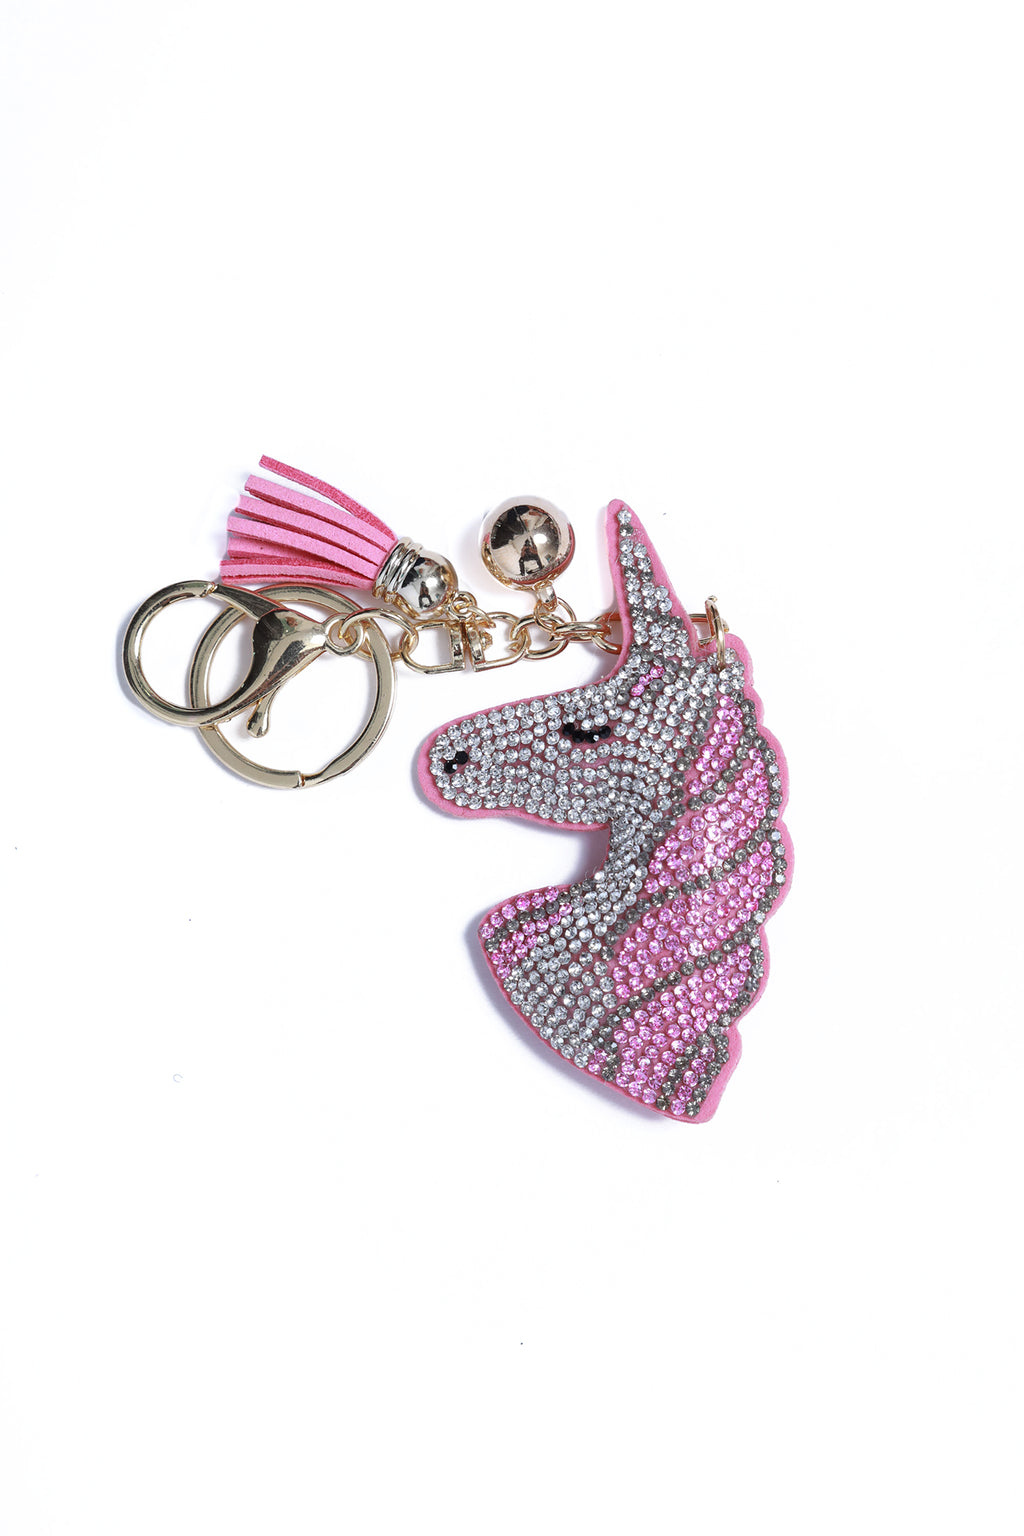 Rhinestone Key Chain Unicorn Head